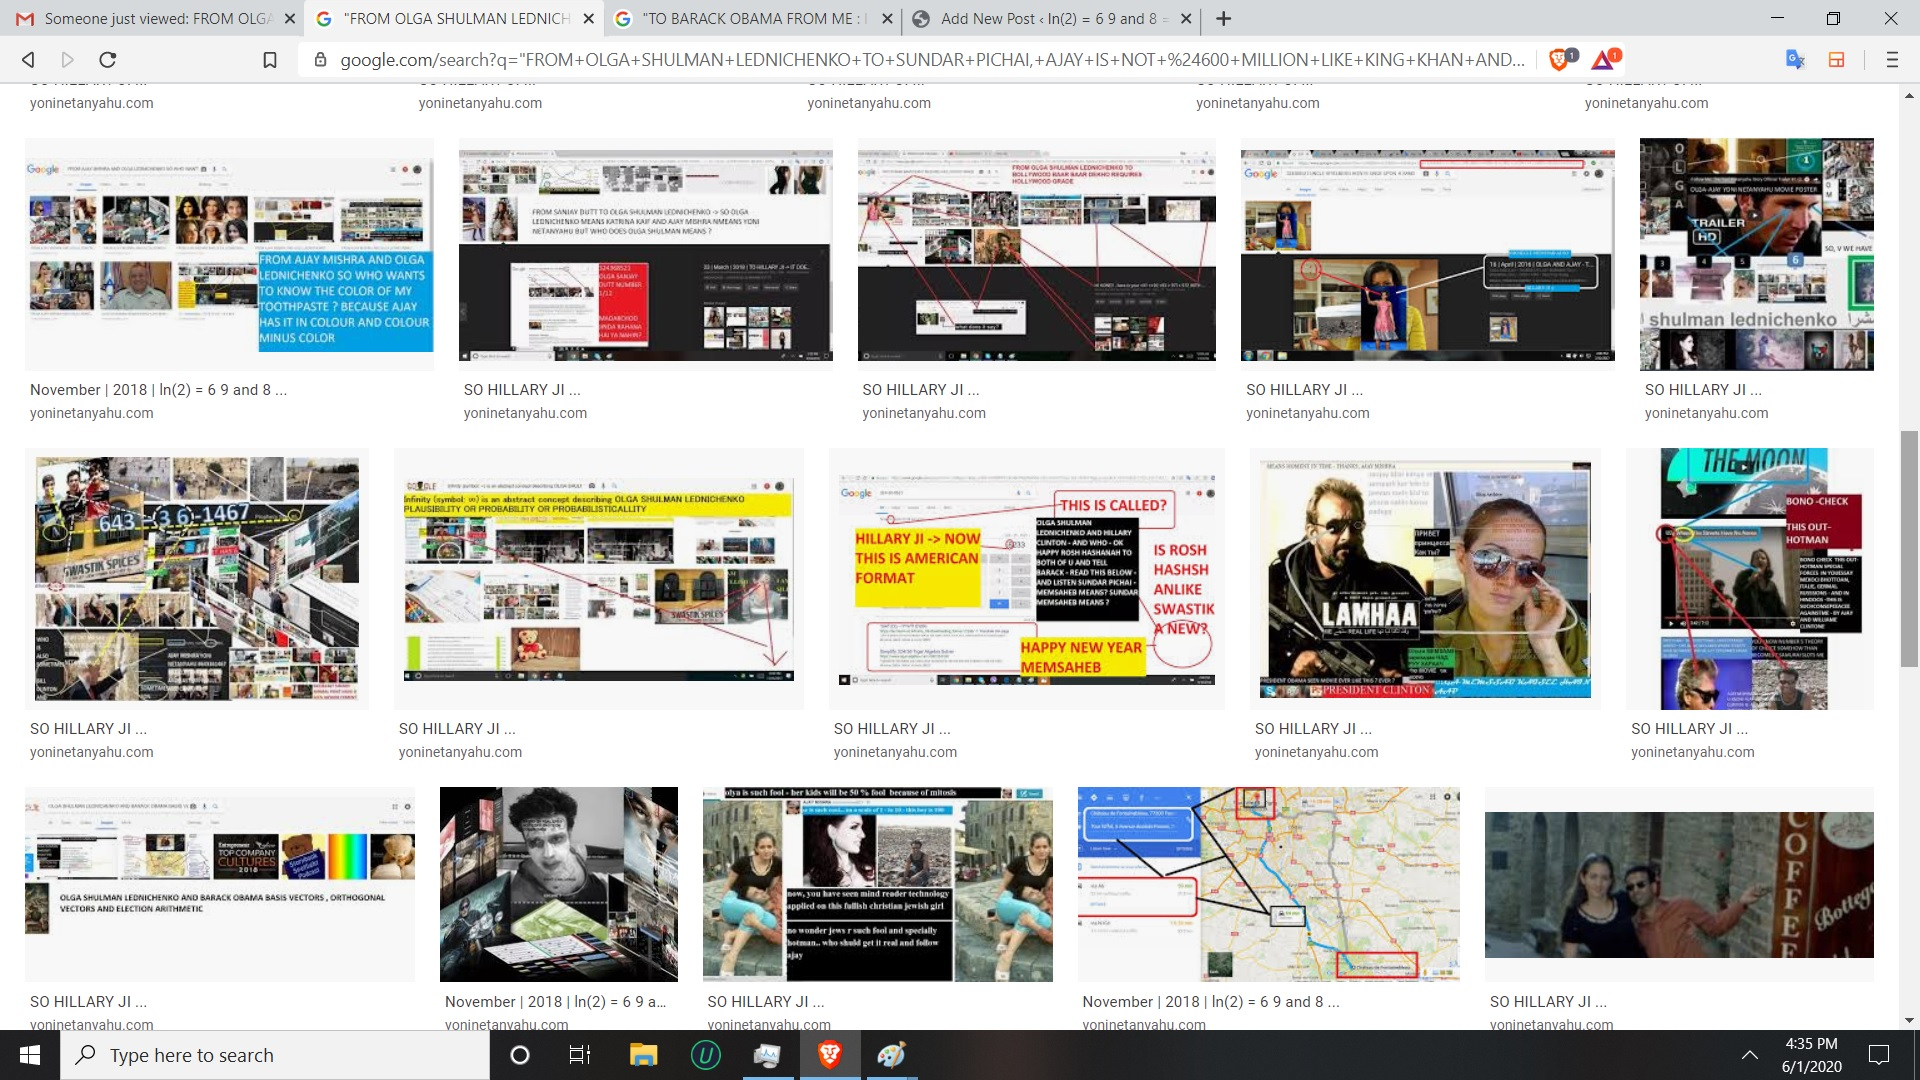 MY LOVE HATE RELATINSHIP WITH GOOGLE NO SUNDRA ITS NOT U ITS LARY AND TH SERGIE THOSE TWO JEWS - AFETR ALL EVEYRTHIG IS ABOUT JEWS - WOW